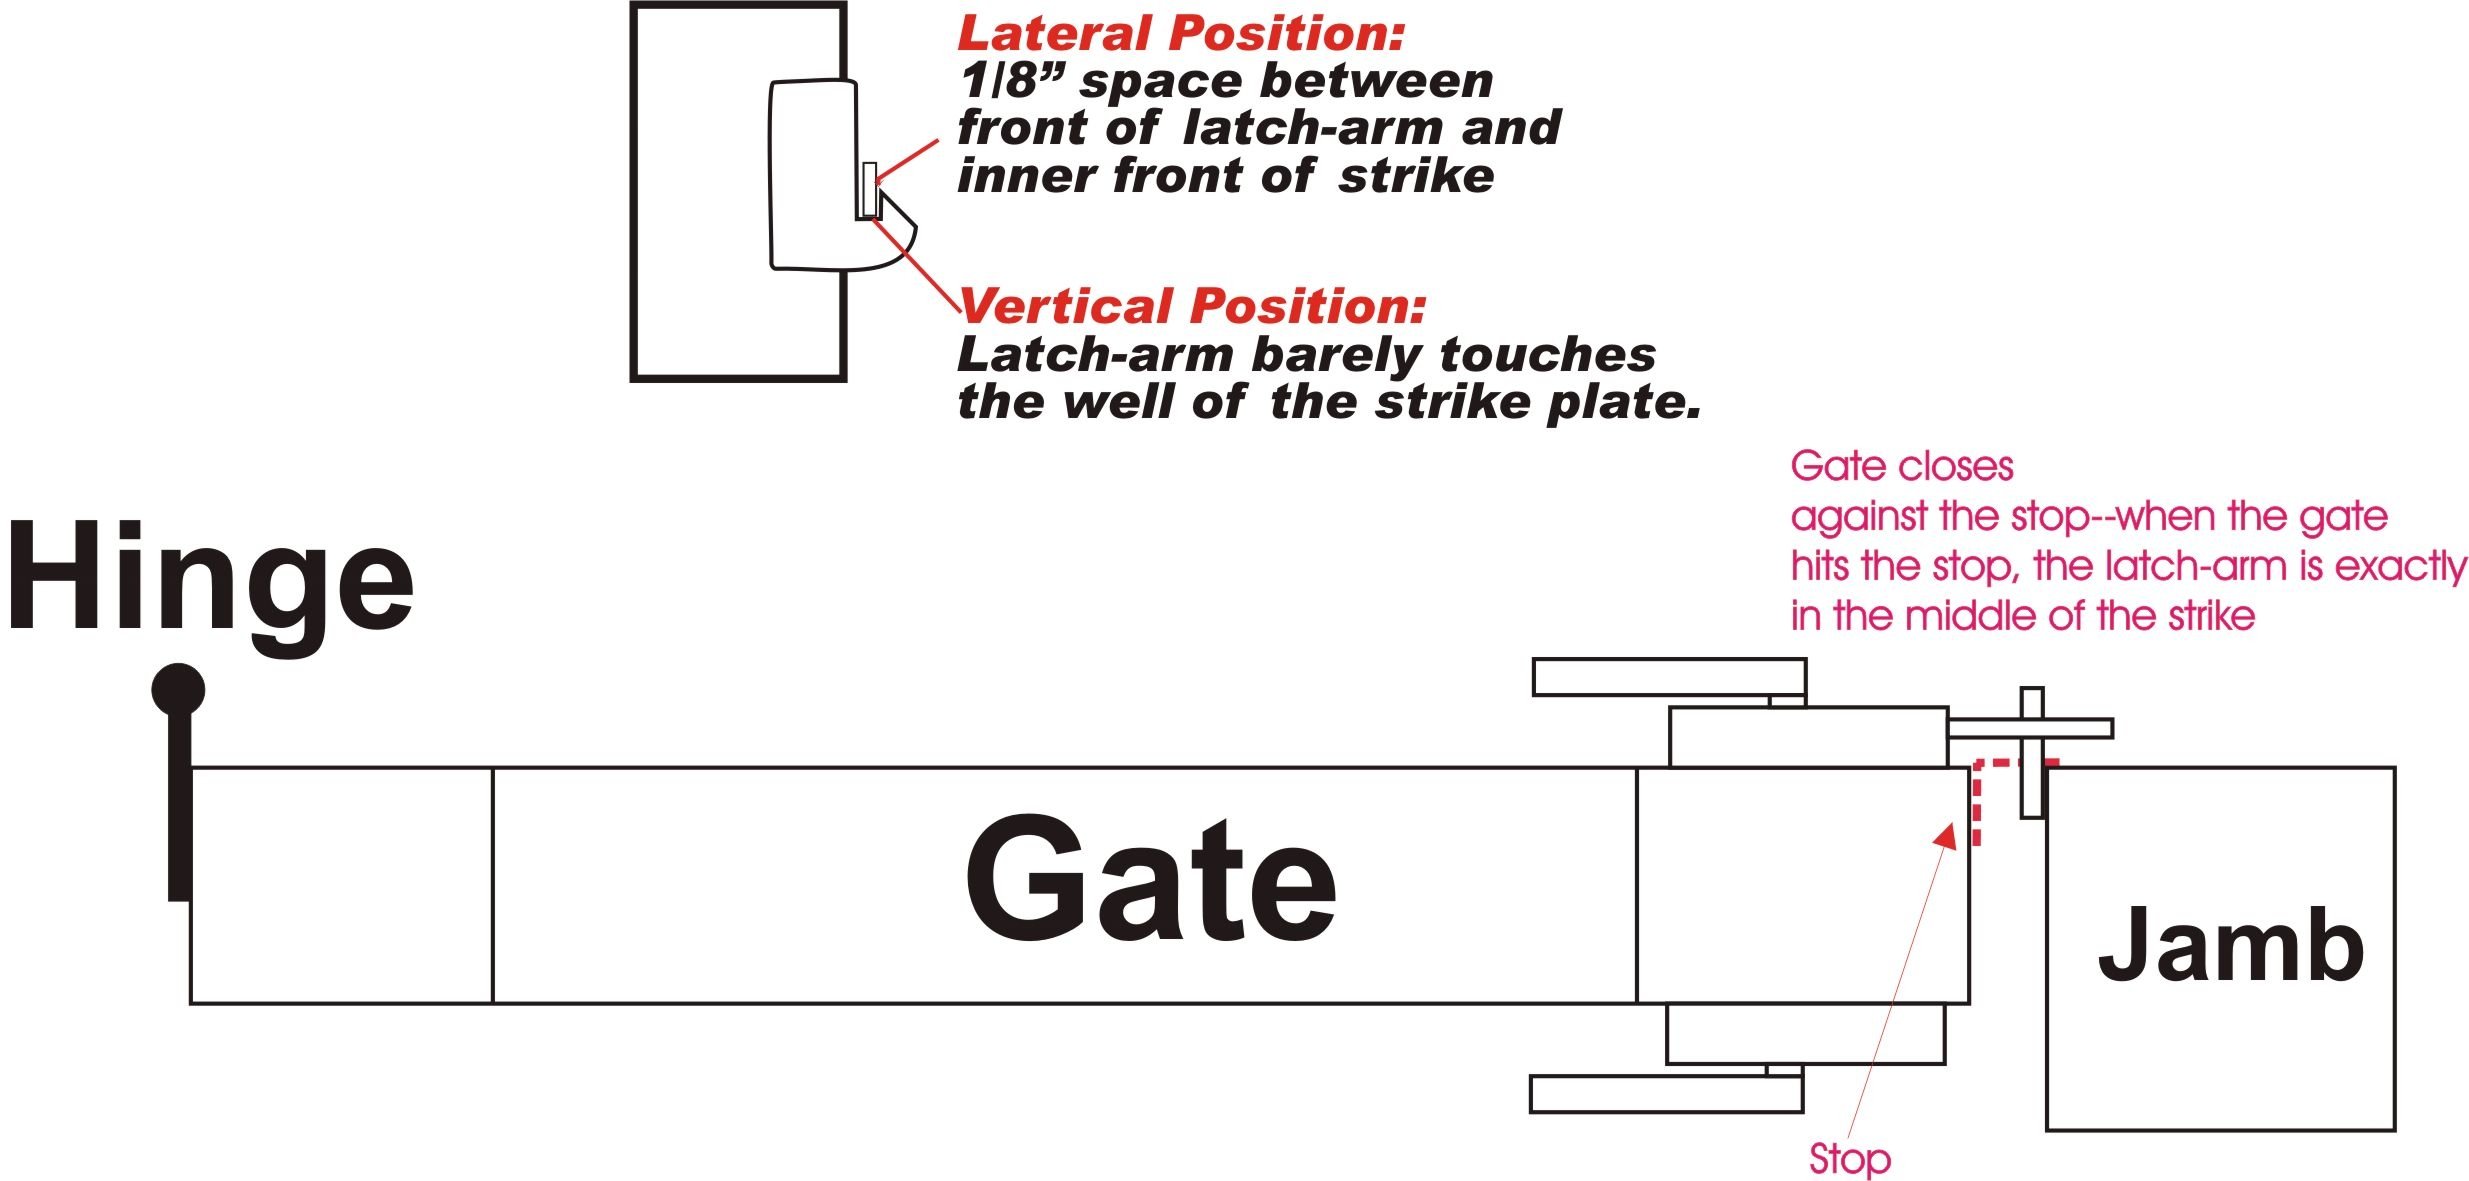 coastal-bronze-gate-stop-alignment-option-2.jpg